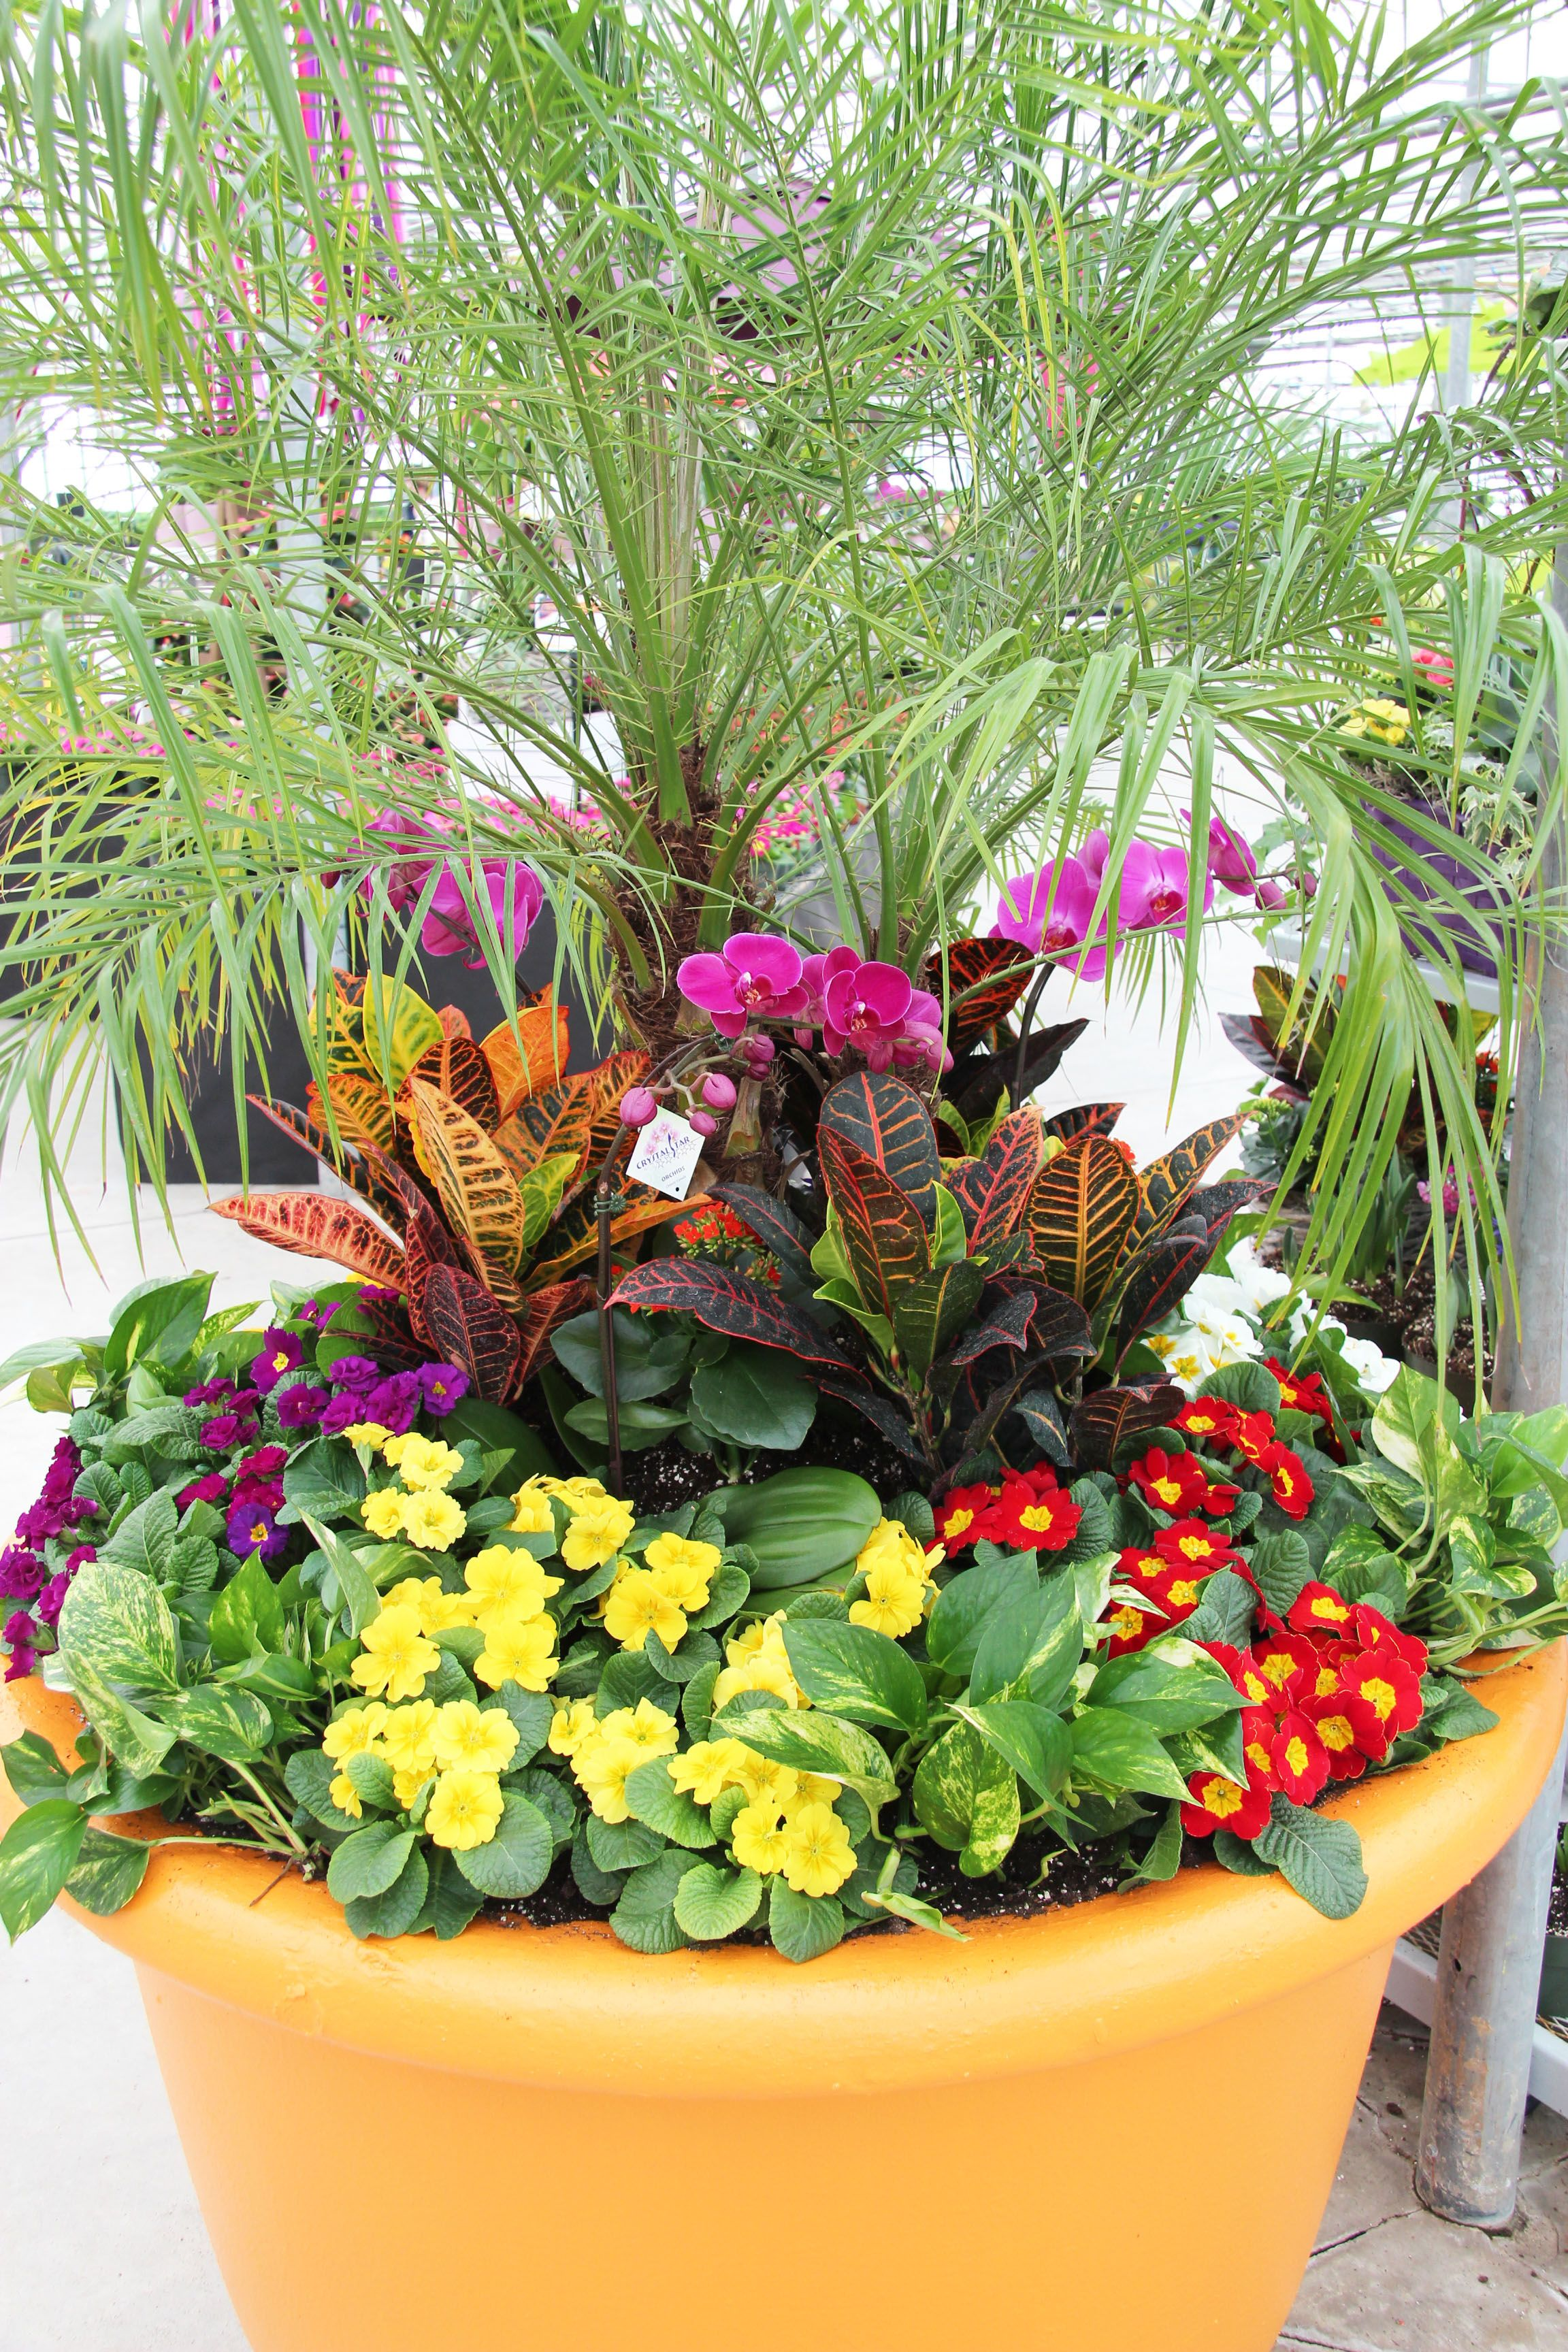 Huge planter with tropical plants | Planting & Gardening ...